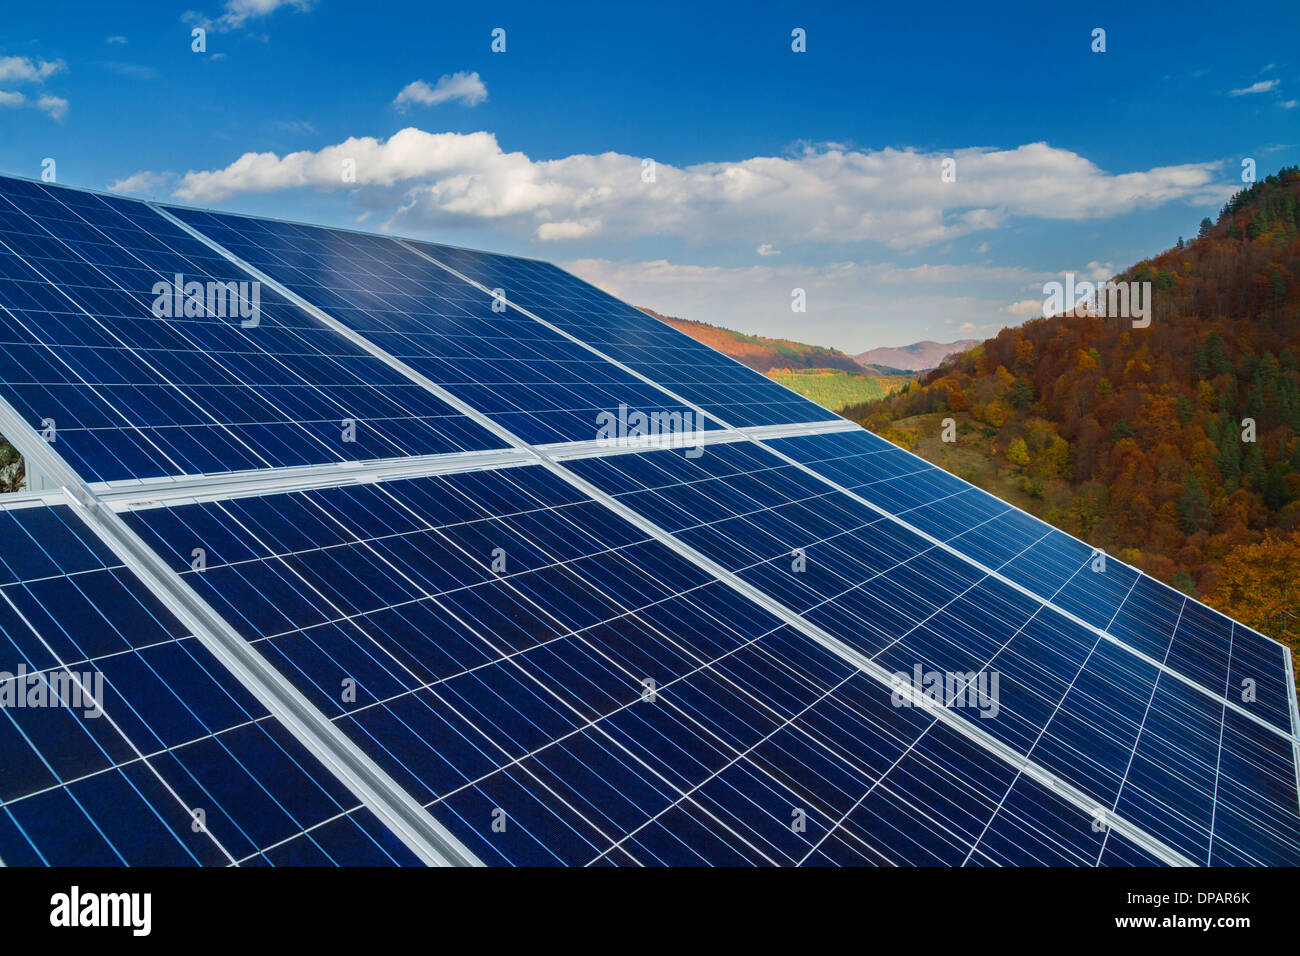 Solar panels installation with blue sky - Stock Image